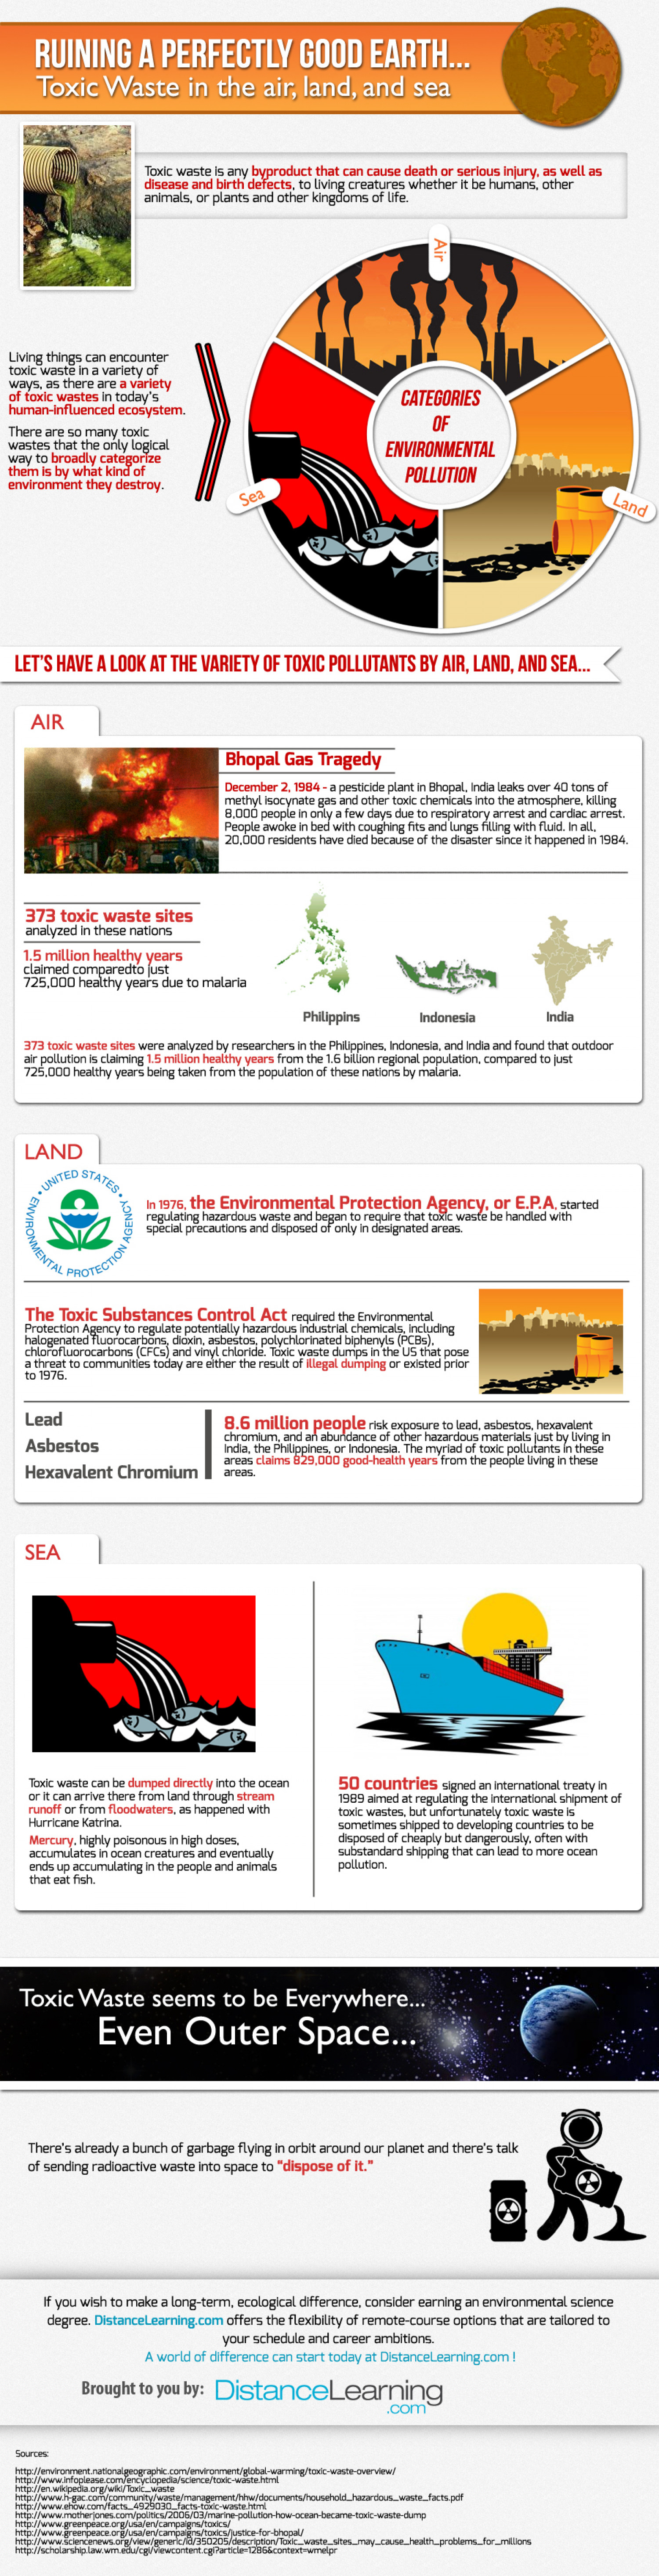 Ruining a Perfectly Good Earth... Toxic Waste in the Air, Land, and Sea Infographic